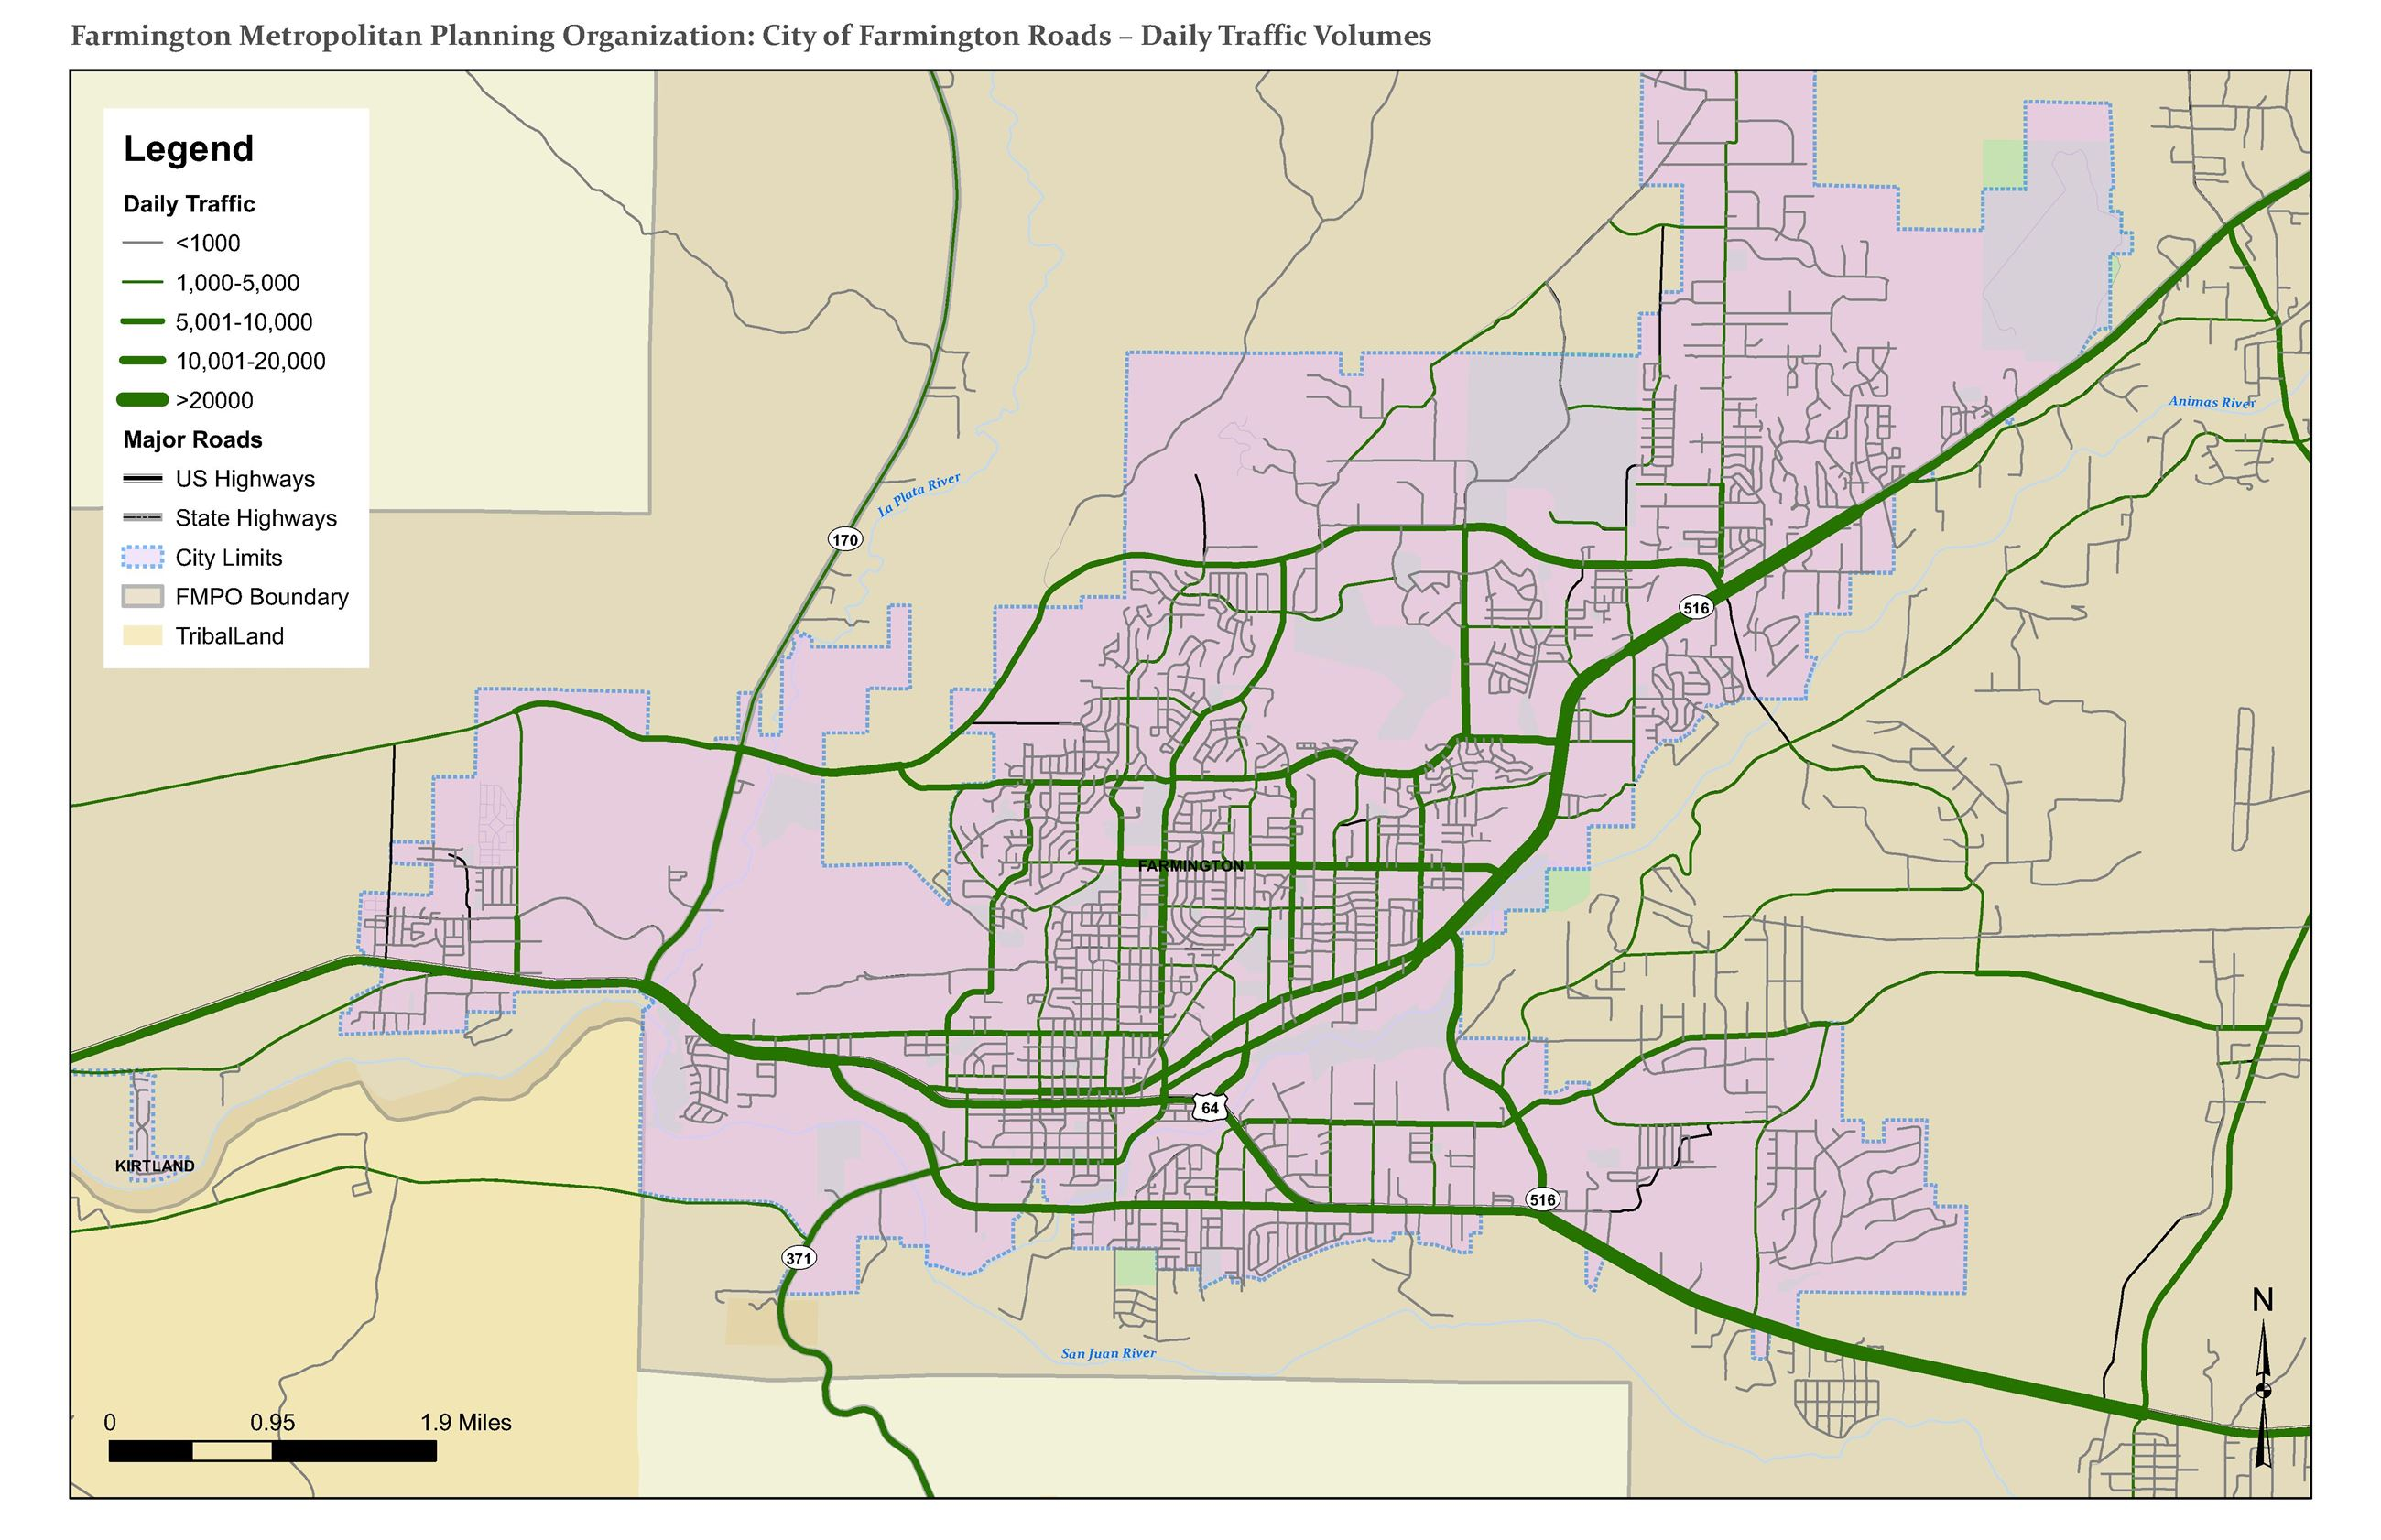 Map - City of Farmington Roads - Daily Traffic Volumes Opens in new window